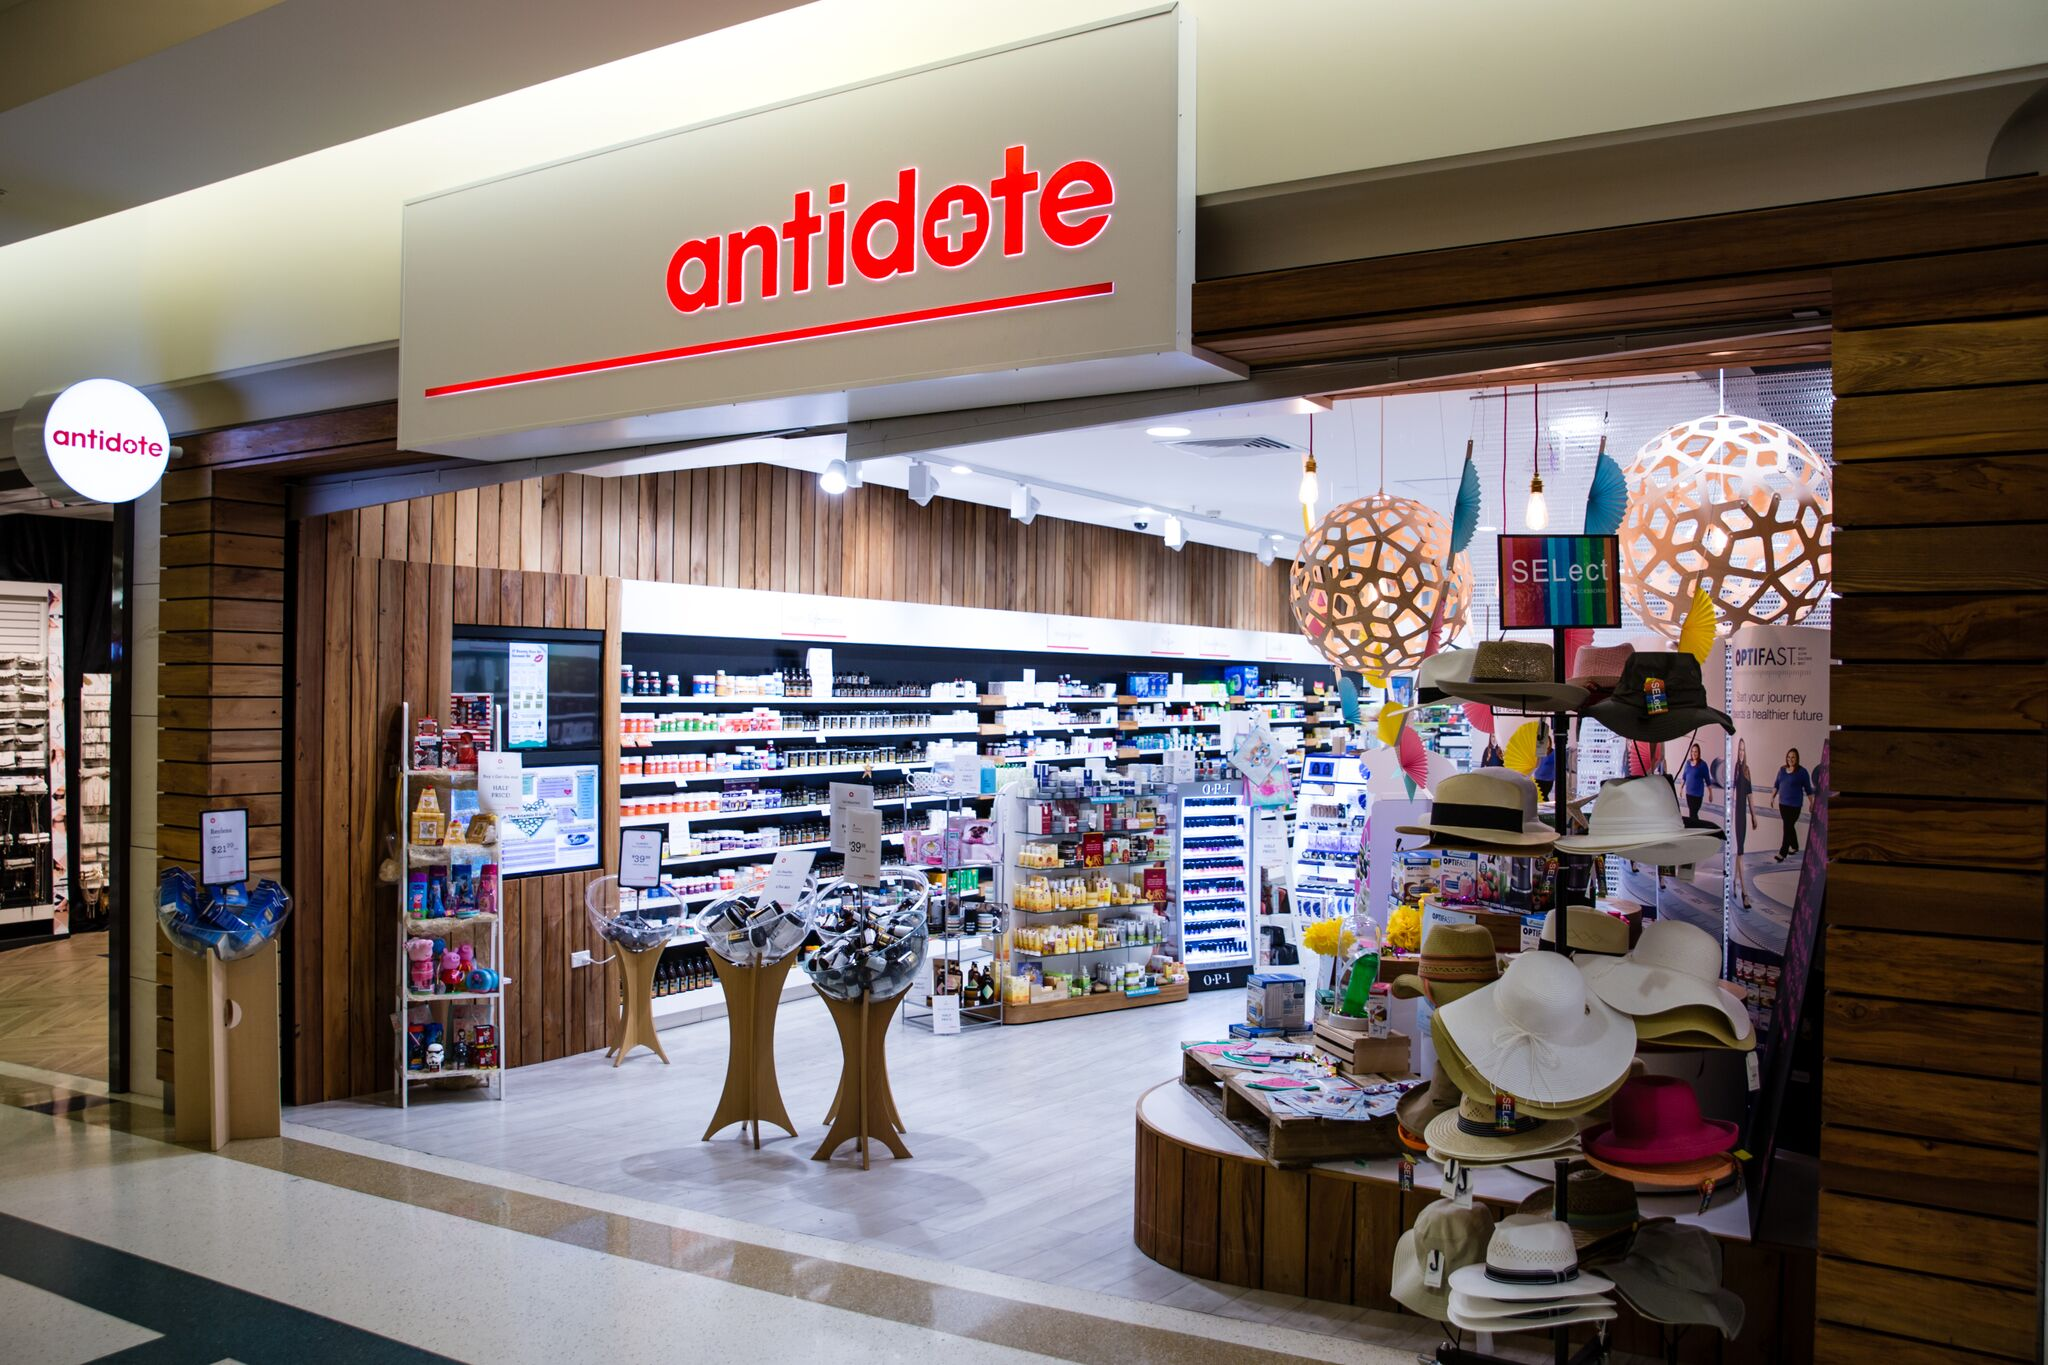 antidote front